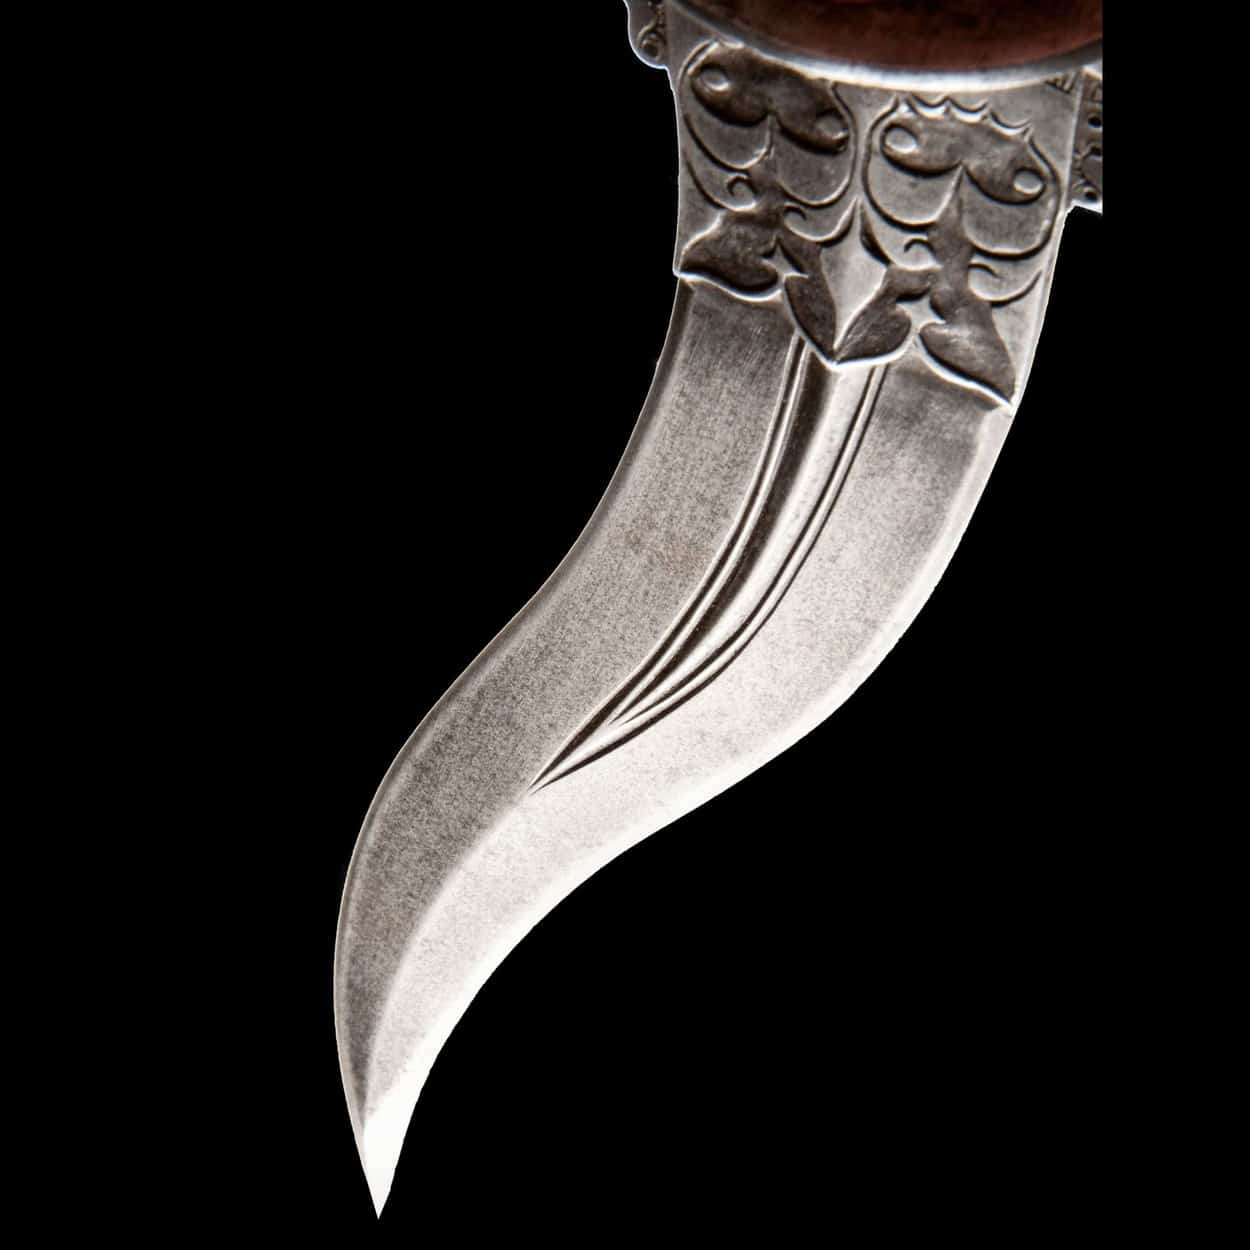 Ivory Hilted Curved Dagger Khanjarli South India 18th